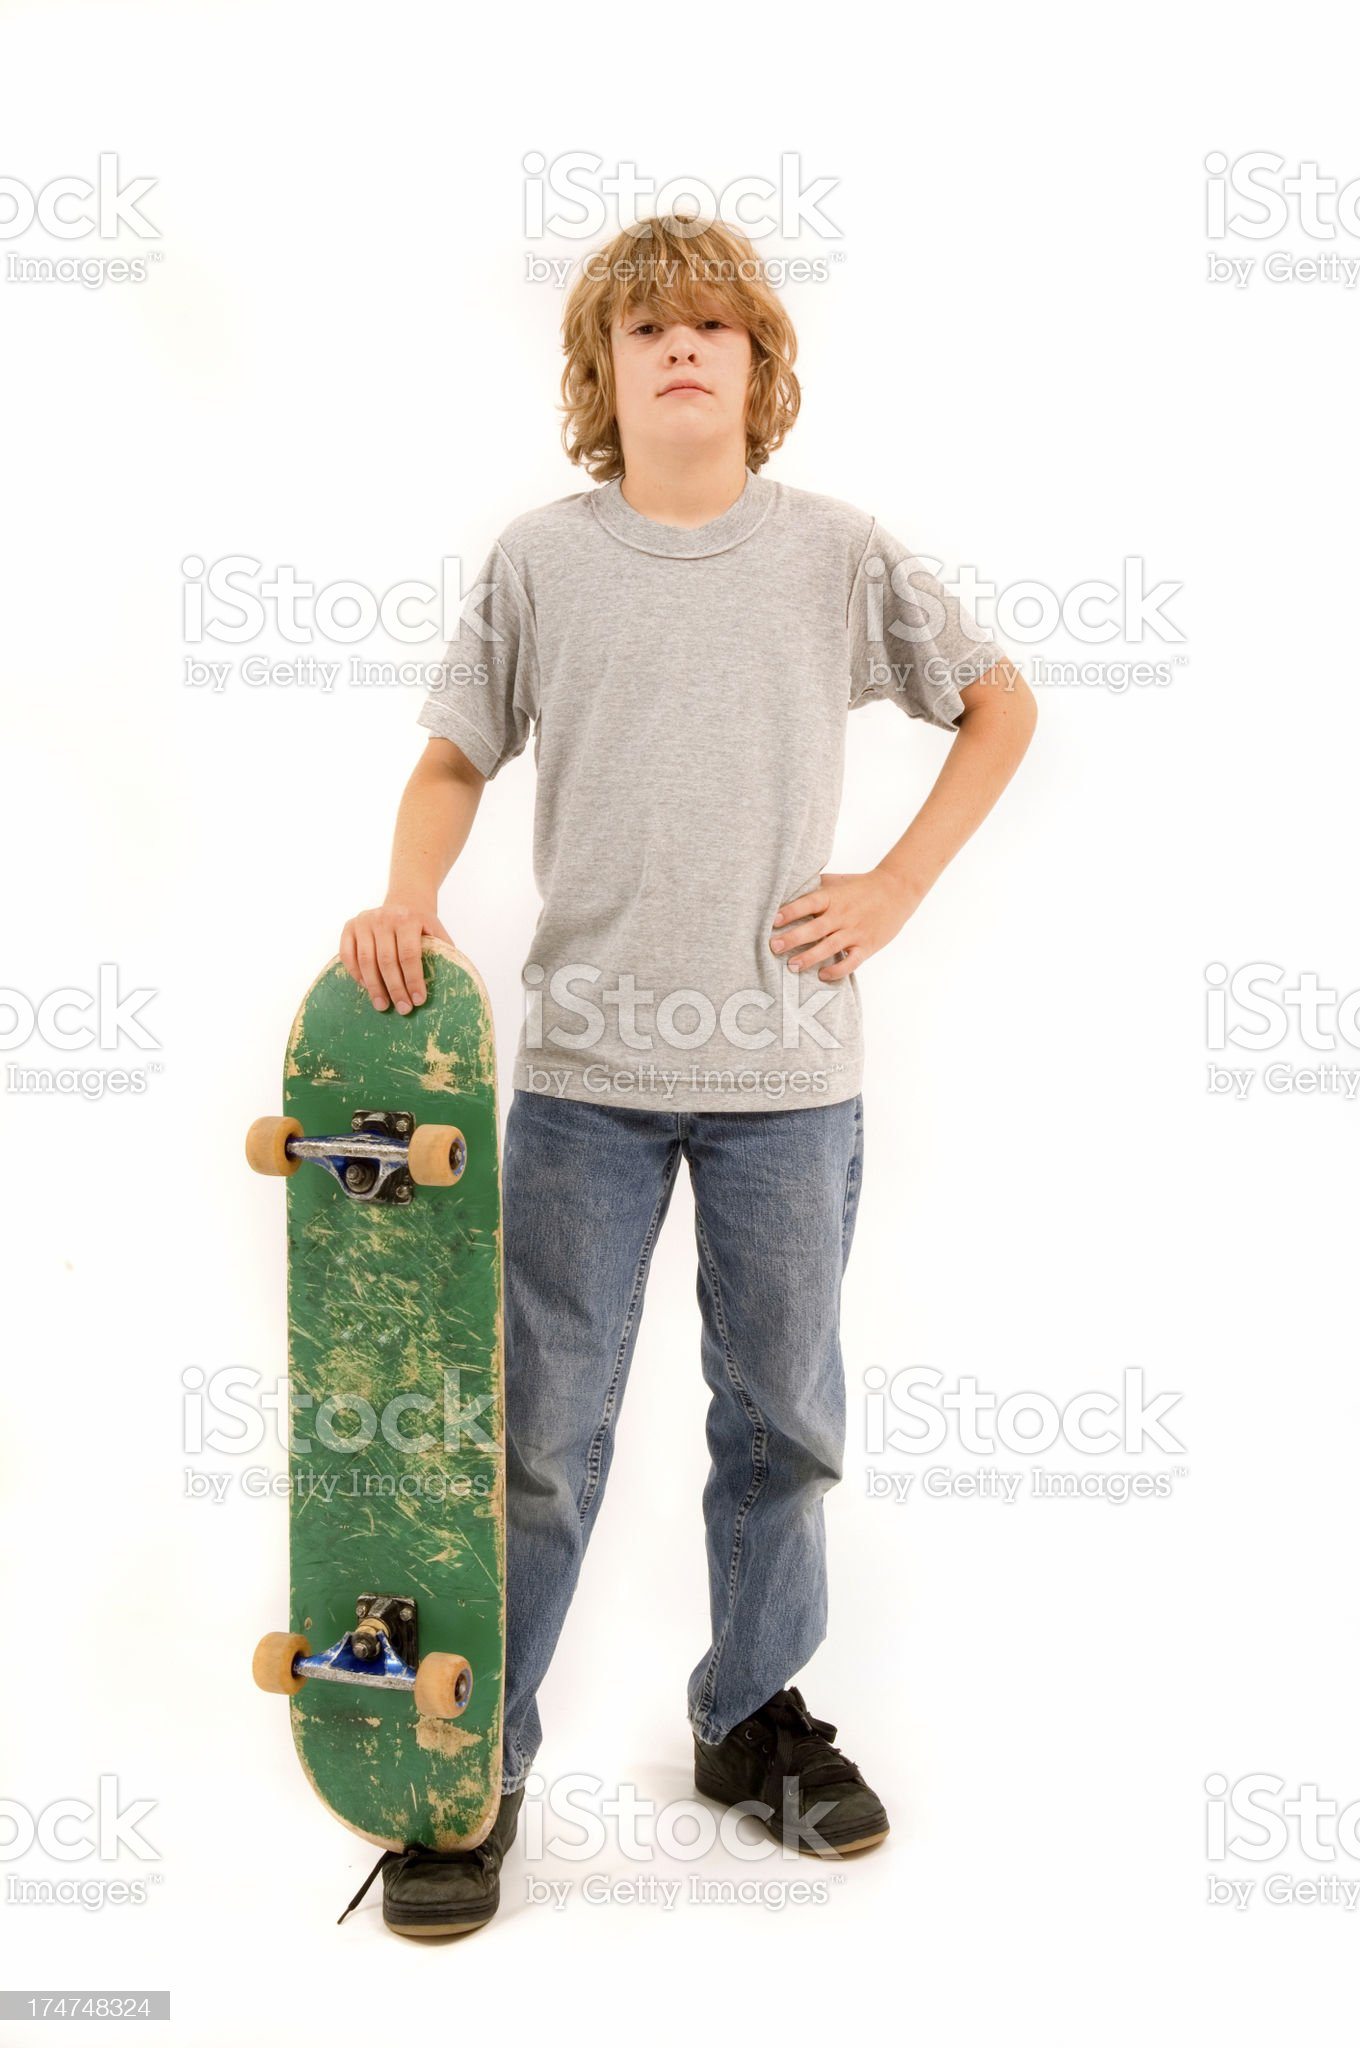 young skateboarder royalty-free stock photo